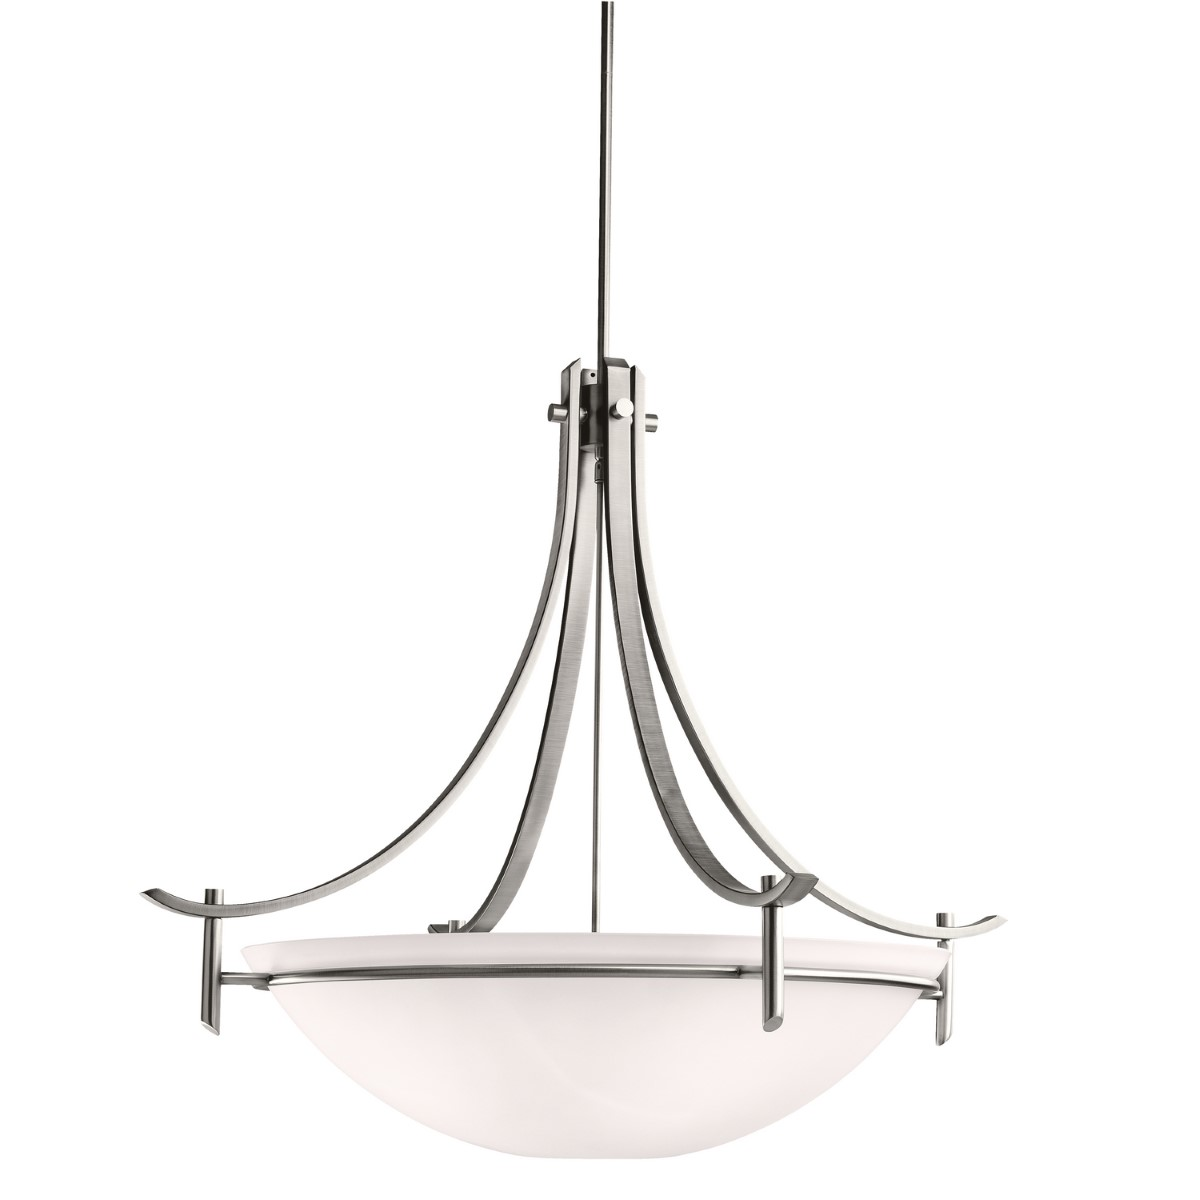 Kichler Olympia Olympia Pendant Light with Satin Etched White Steel Shade - Antique Pewter (3279AP)